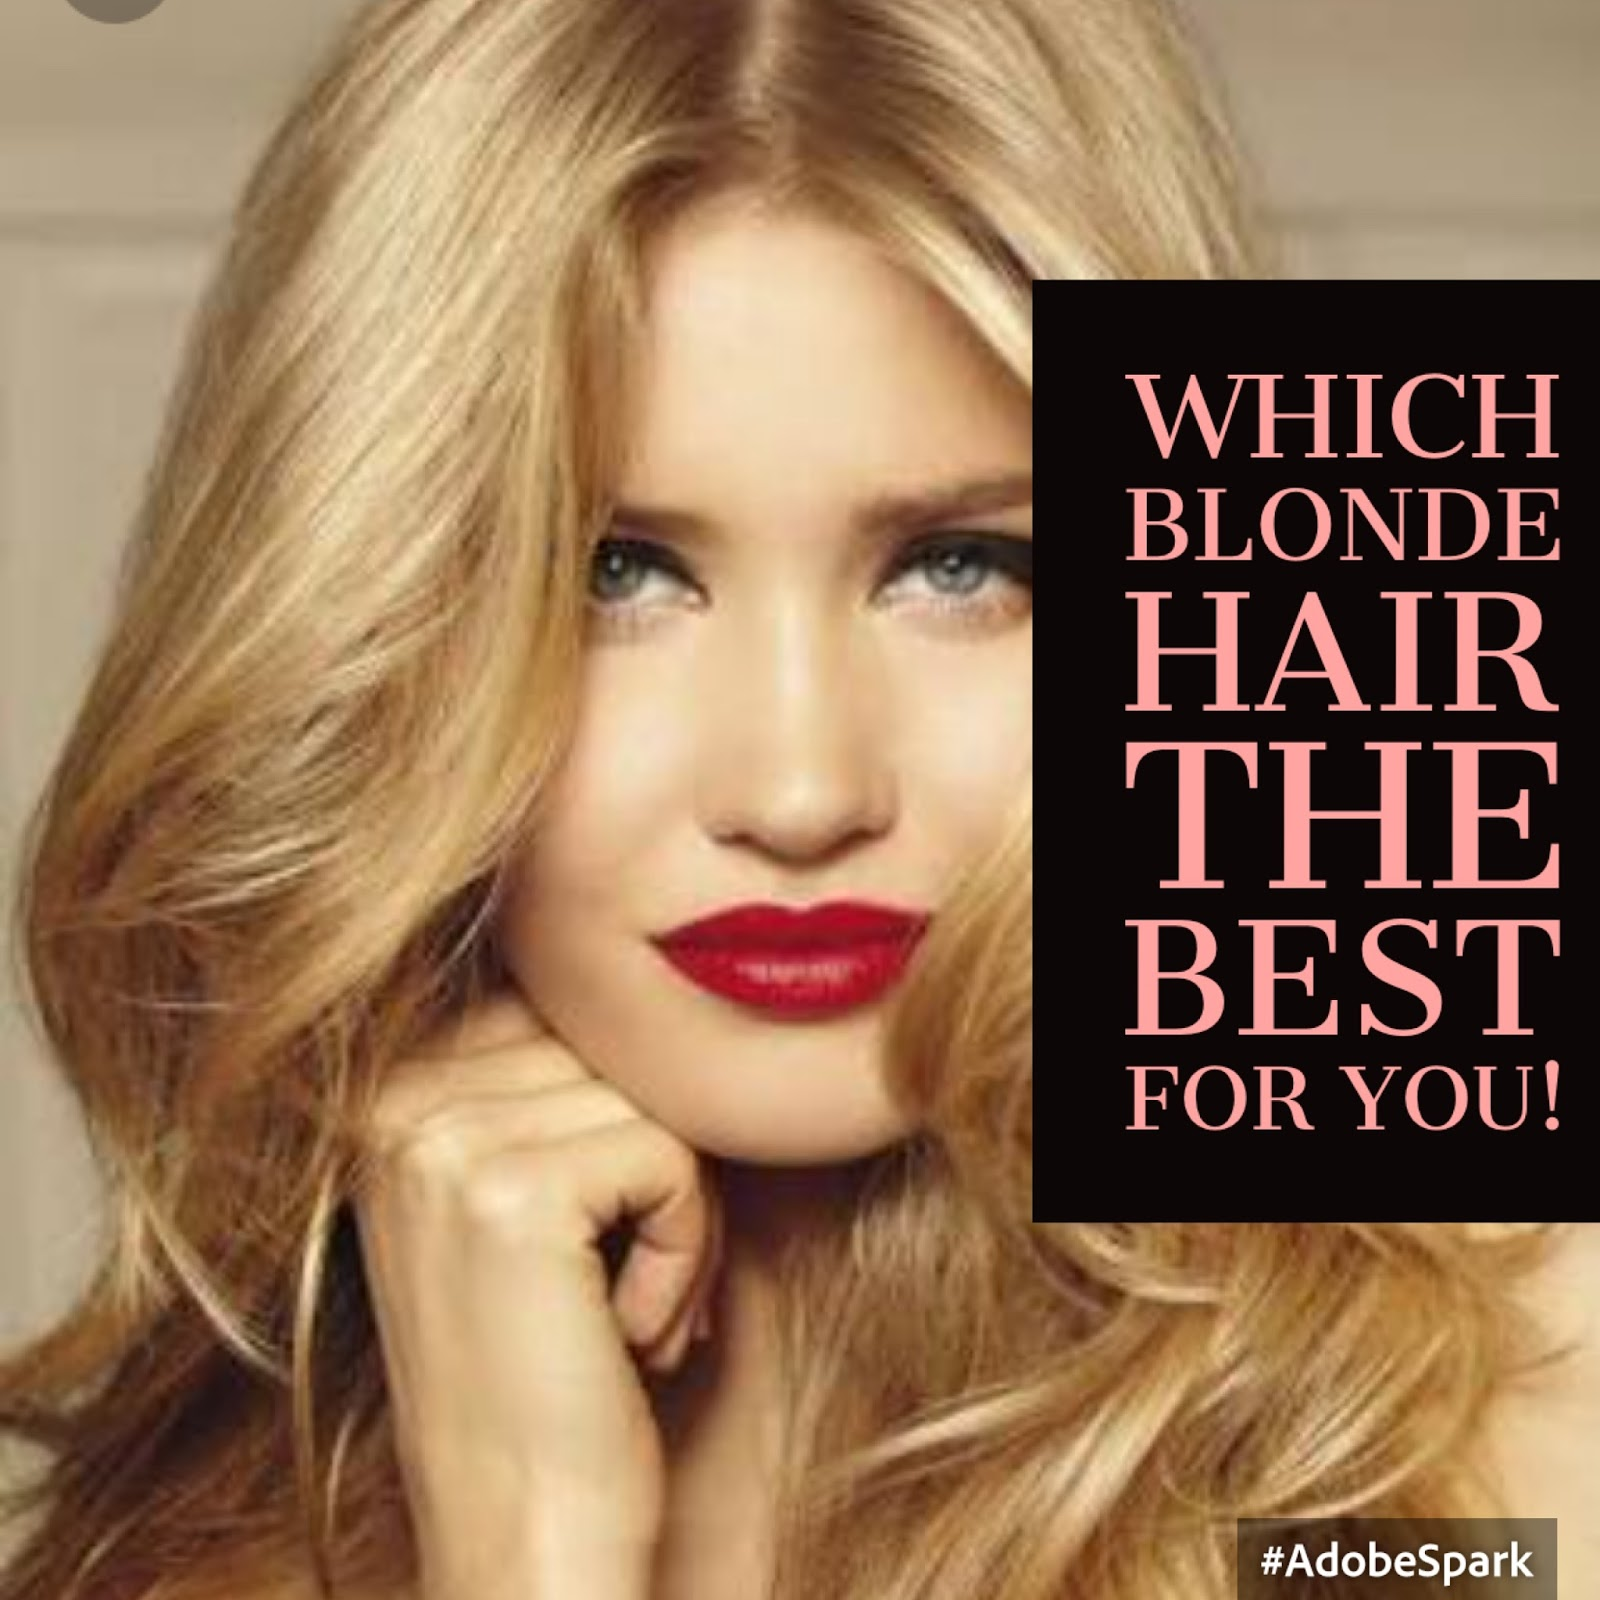 7 Most Popular Tone Of Blonde Hair Which Blonde Hair Best For You